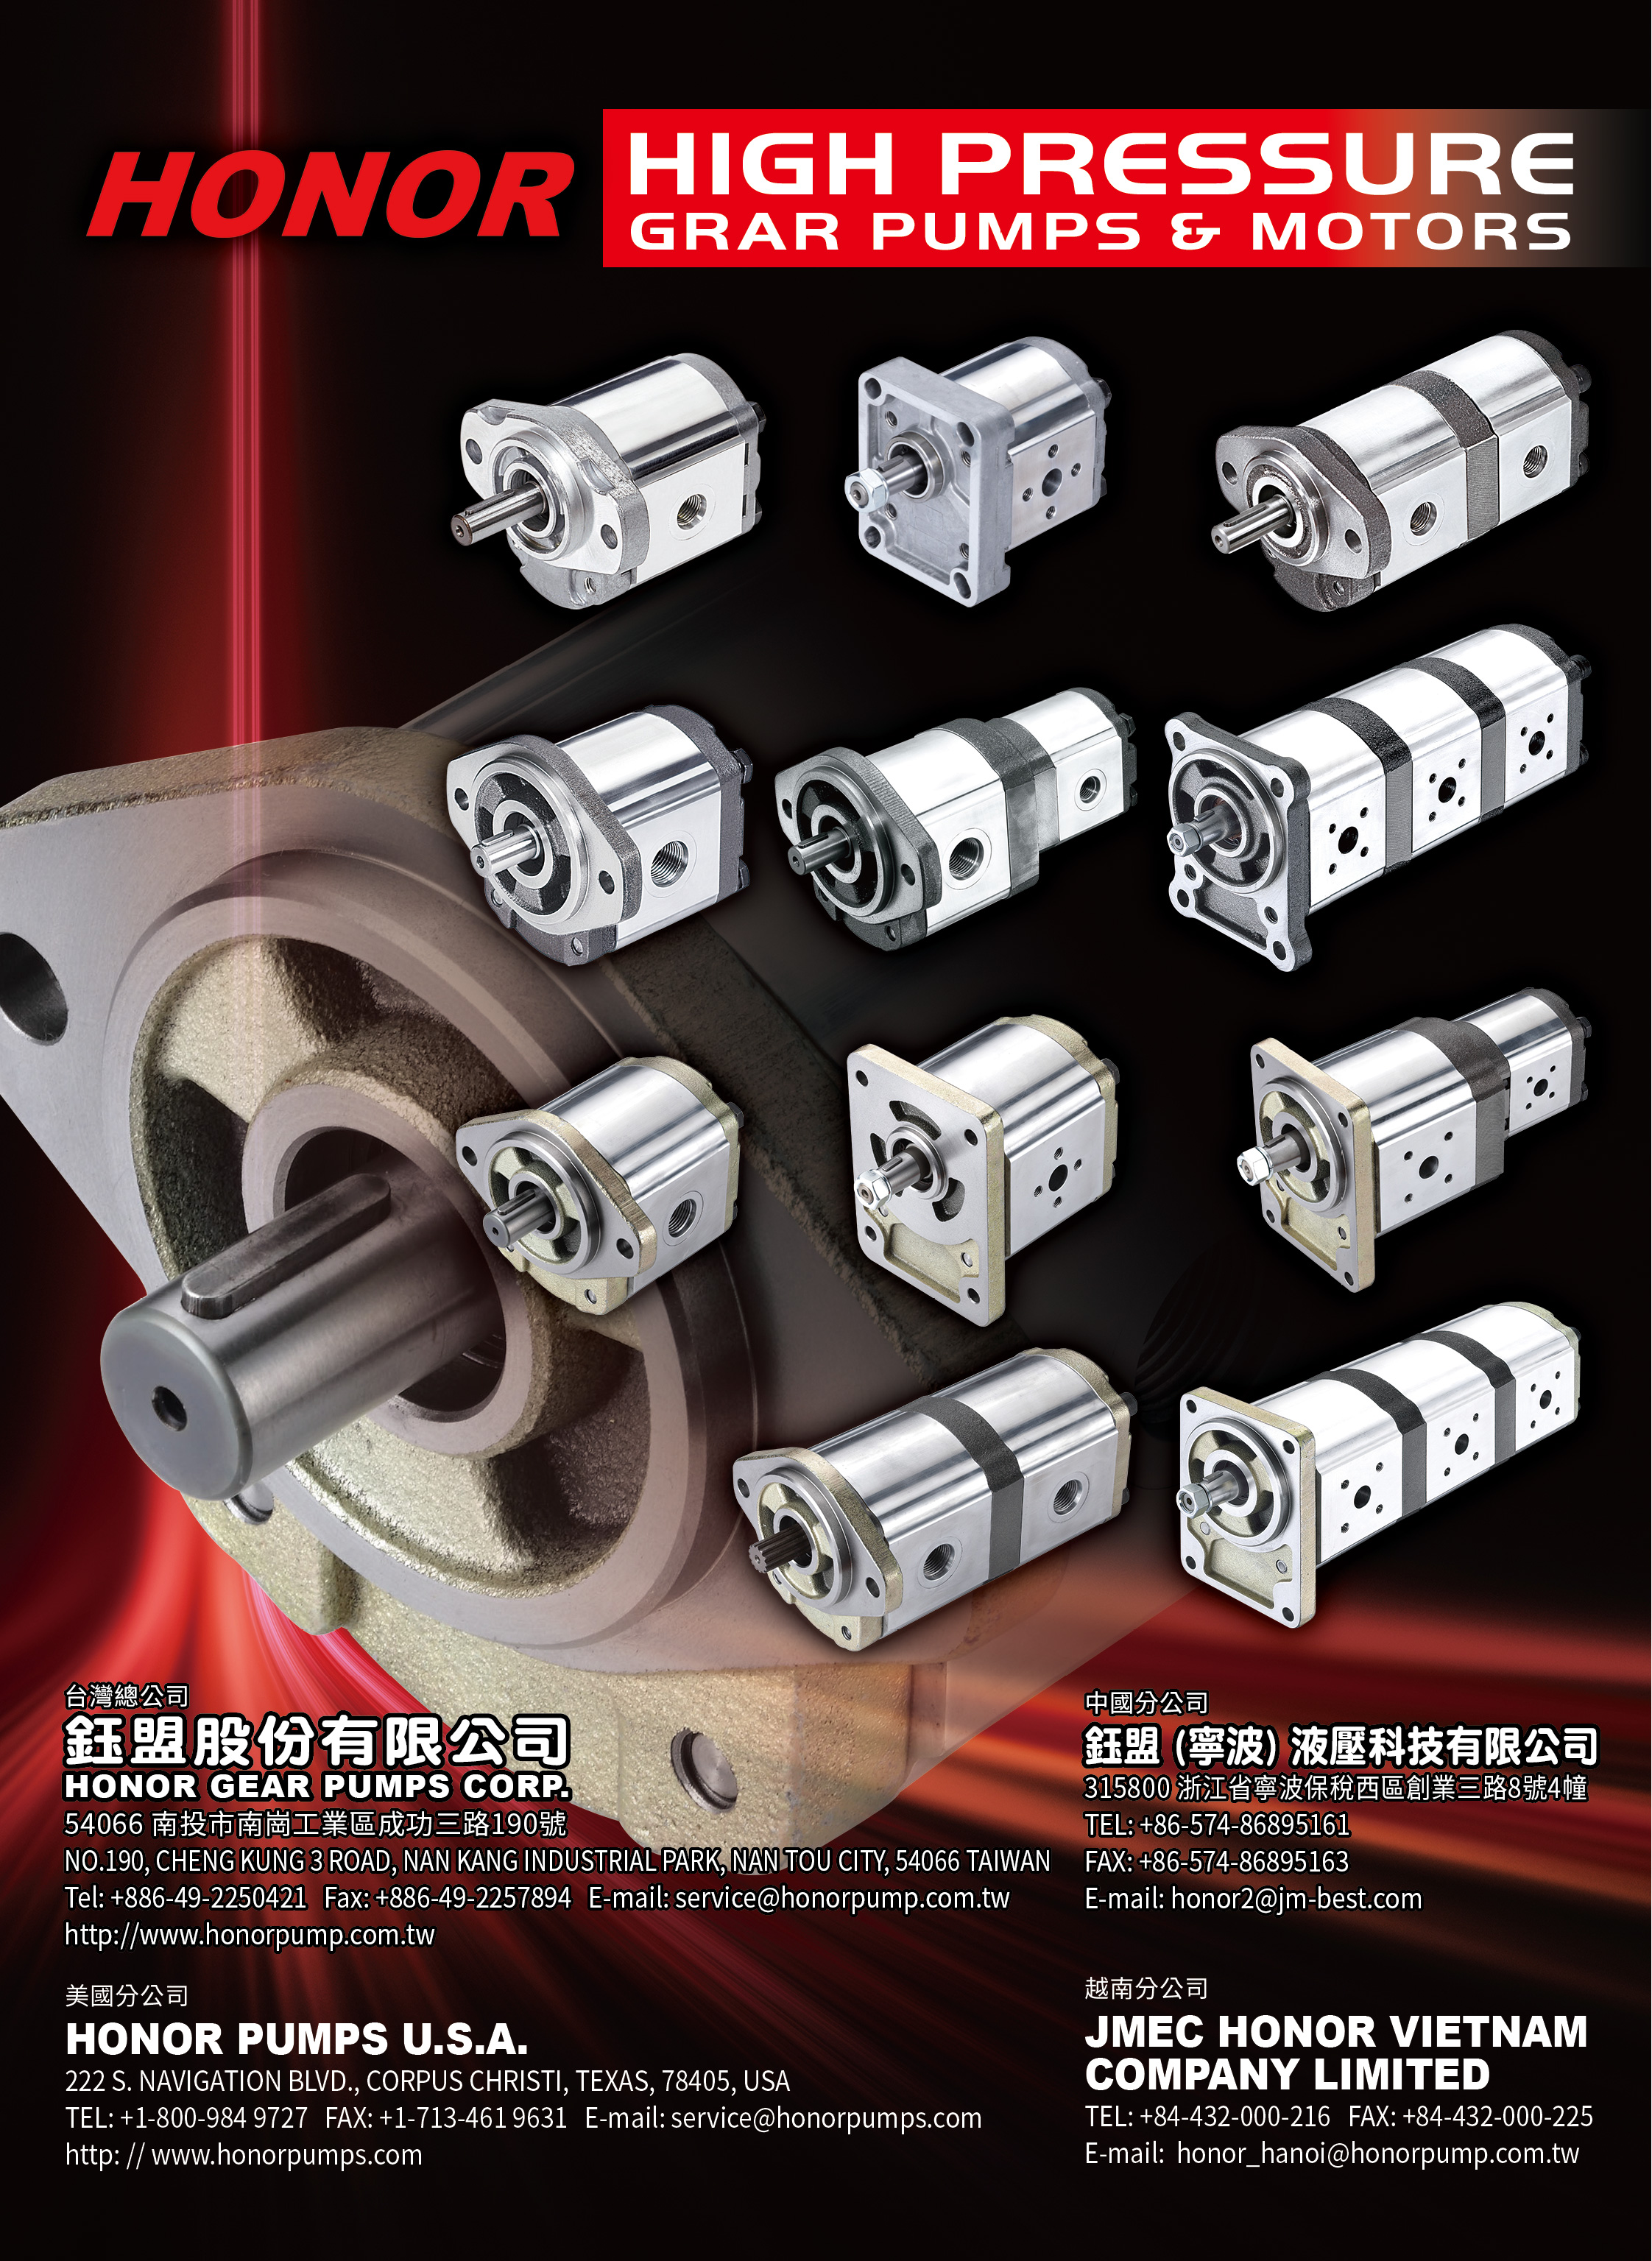 HONOR GEAR PUMPS CORP.